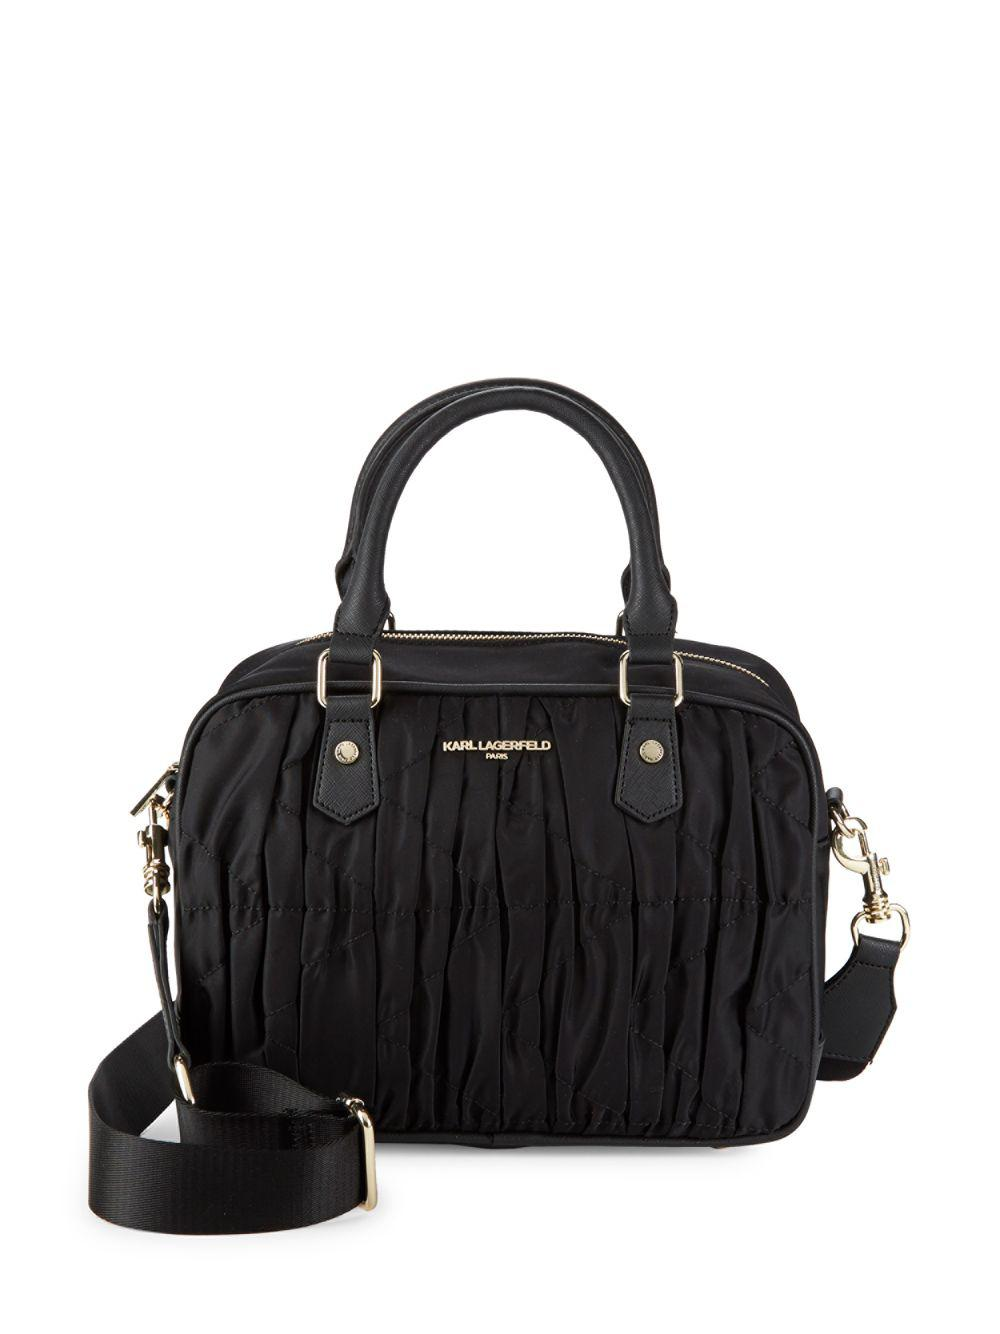 Pre-owned - Leather mini bag Karl Lagerfeld uVUmST52Wi